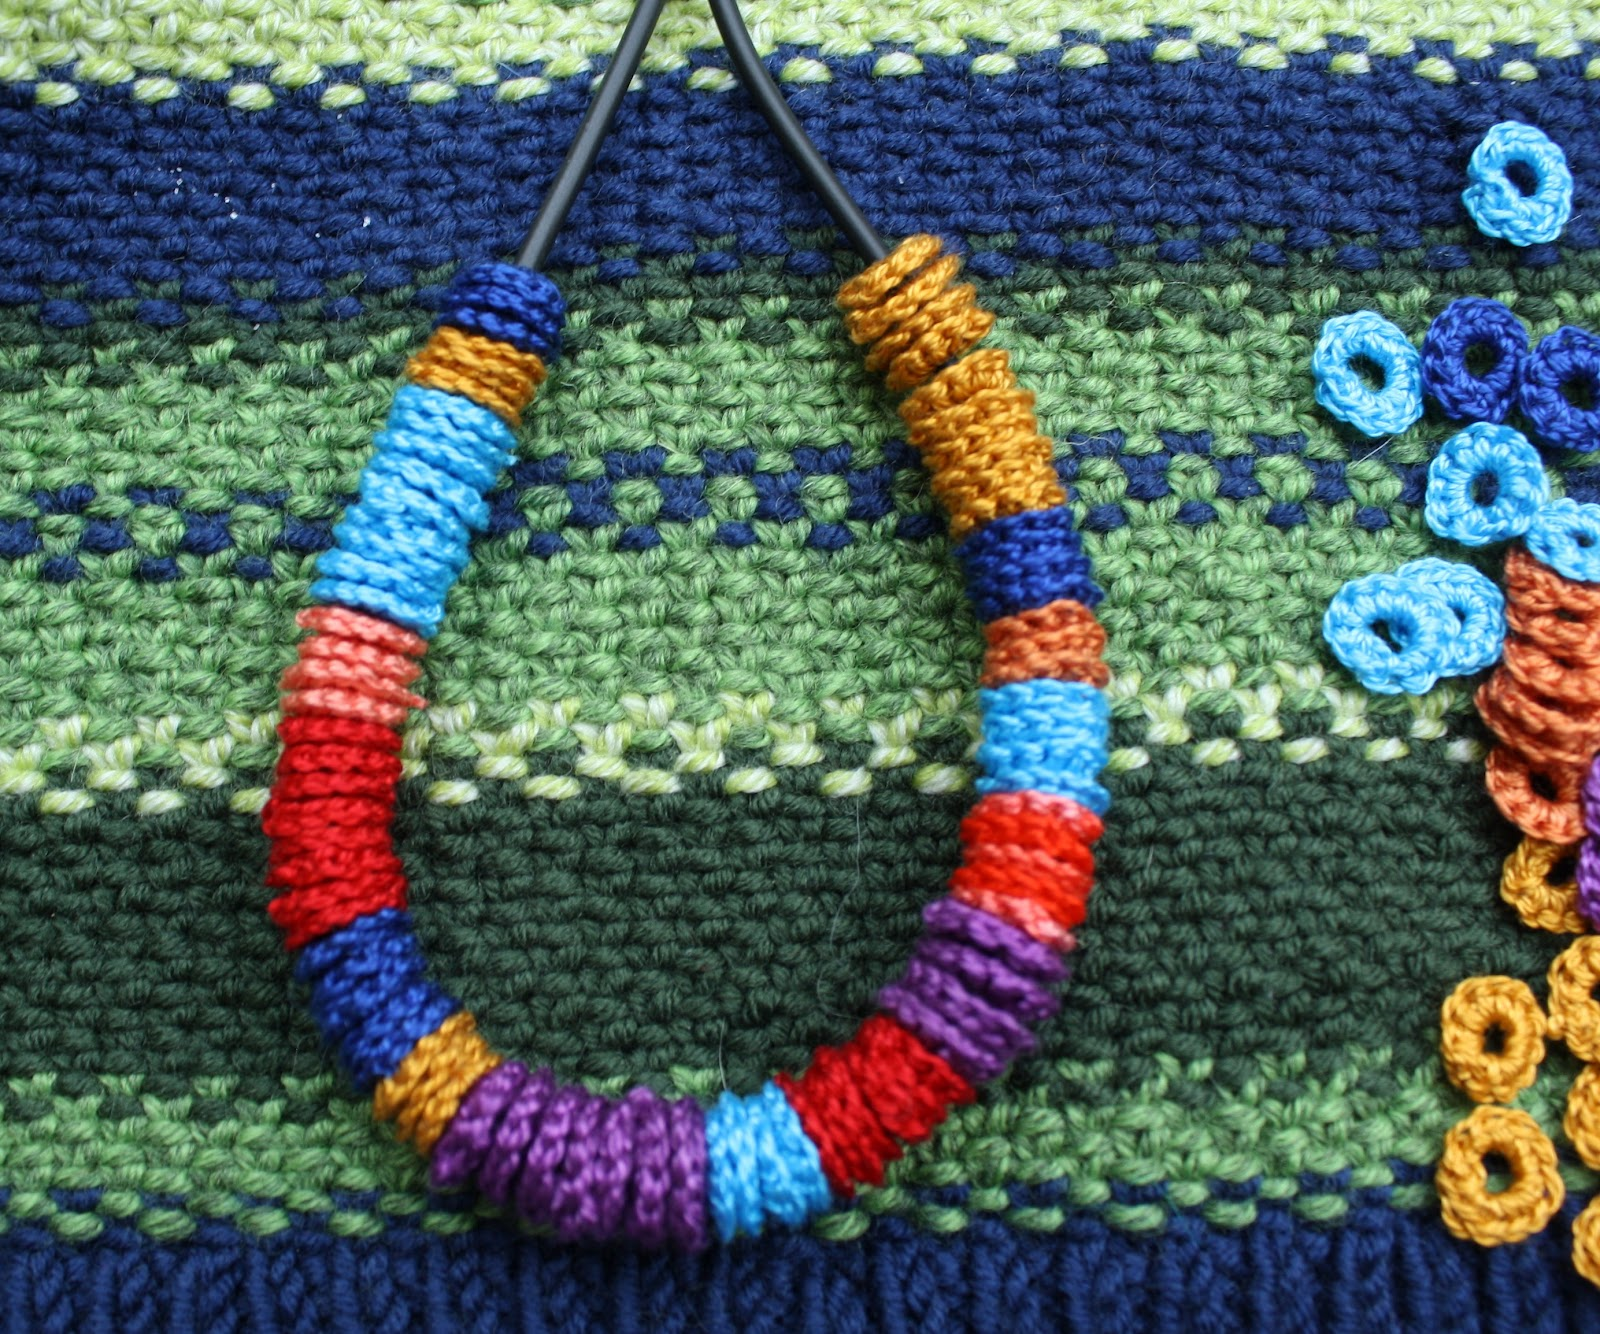 Crochet Pattern With Beads : QueerJoes Knitting Blog